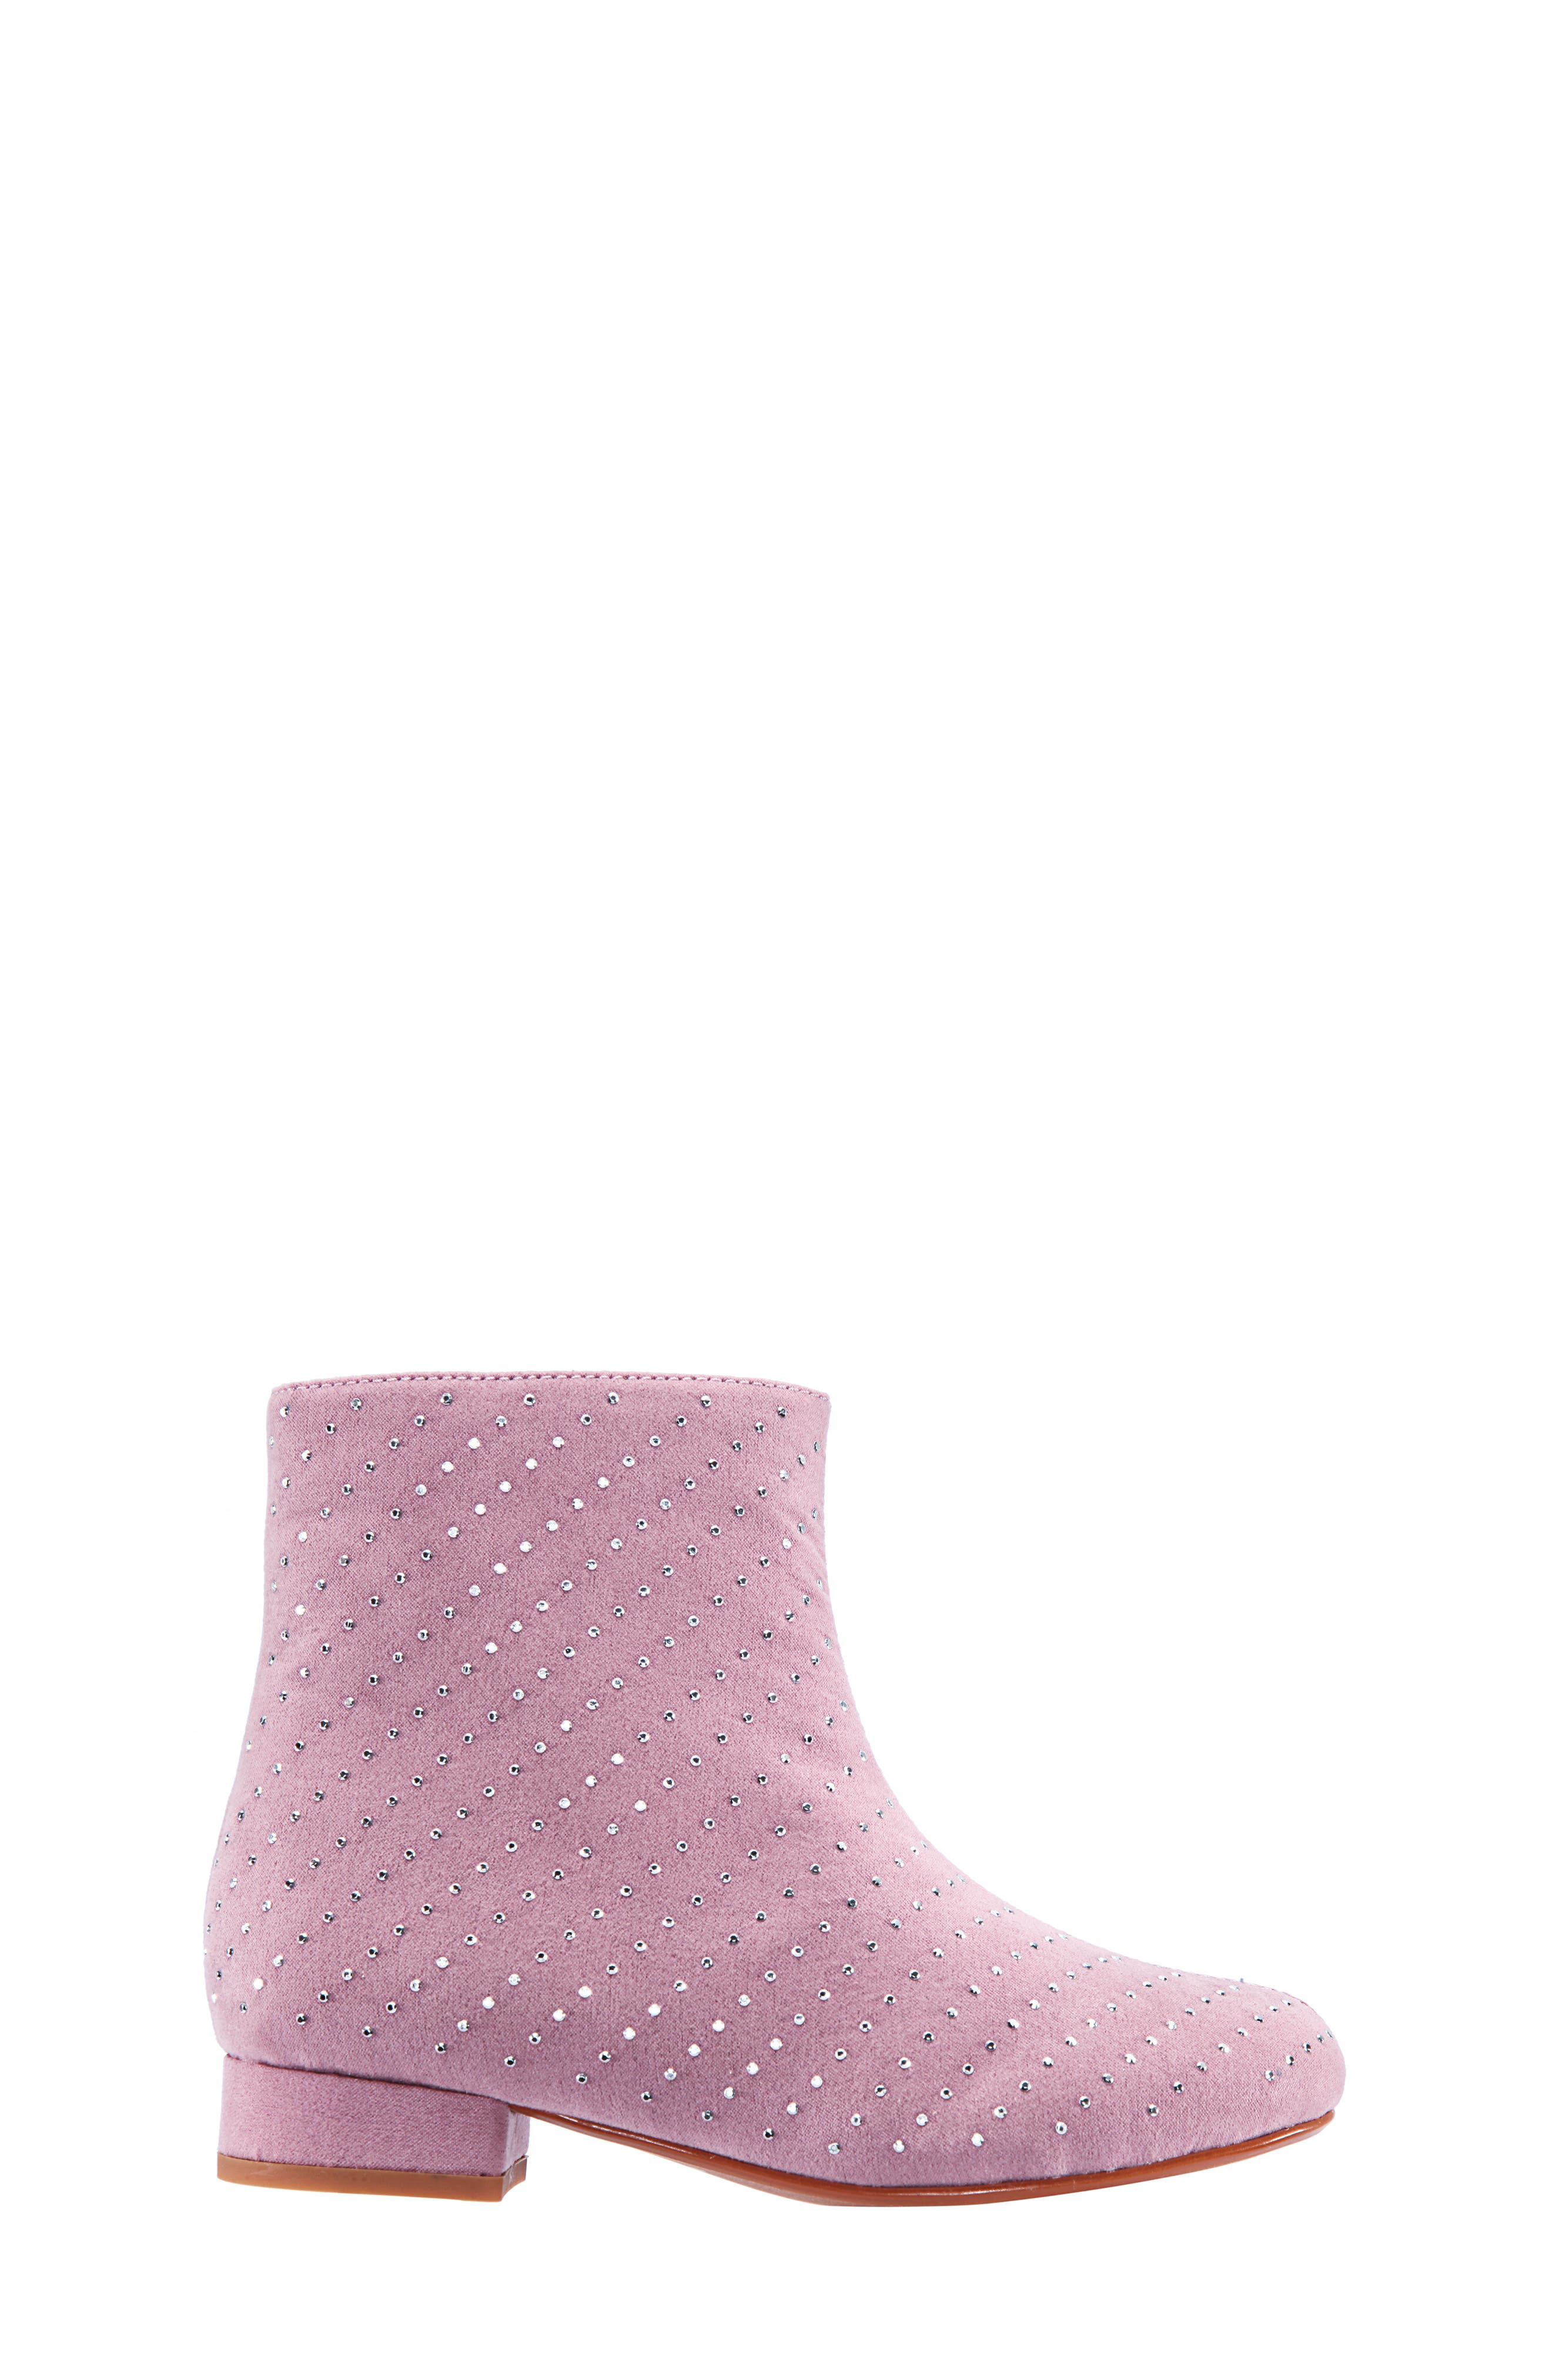 Peaches Studded Bootie,                             Alternate thumbnail 3, color,                             PINK MICRO SUEDE